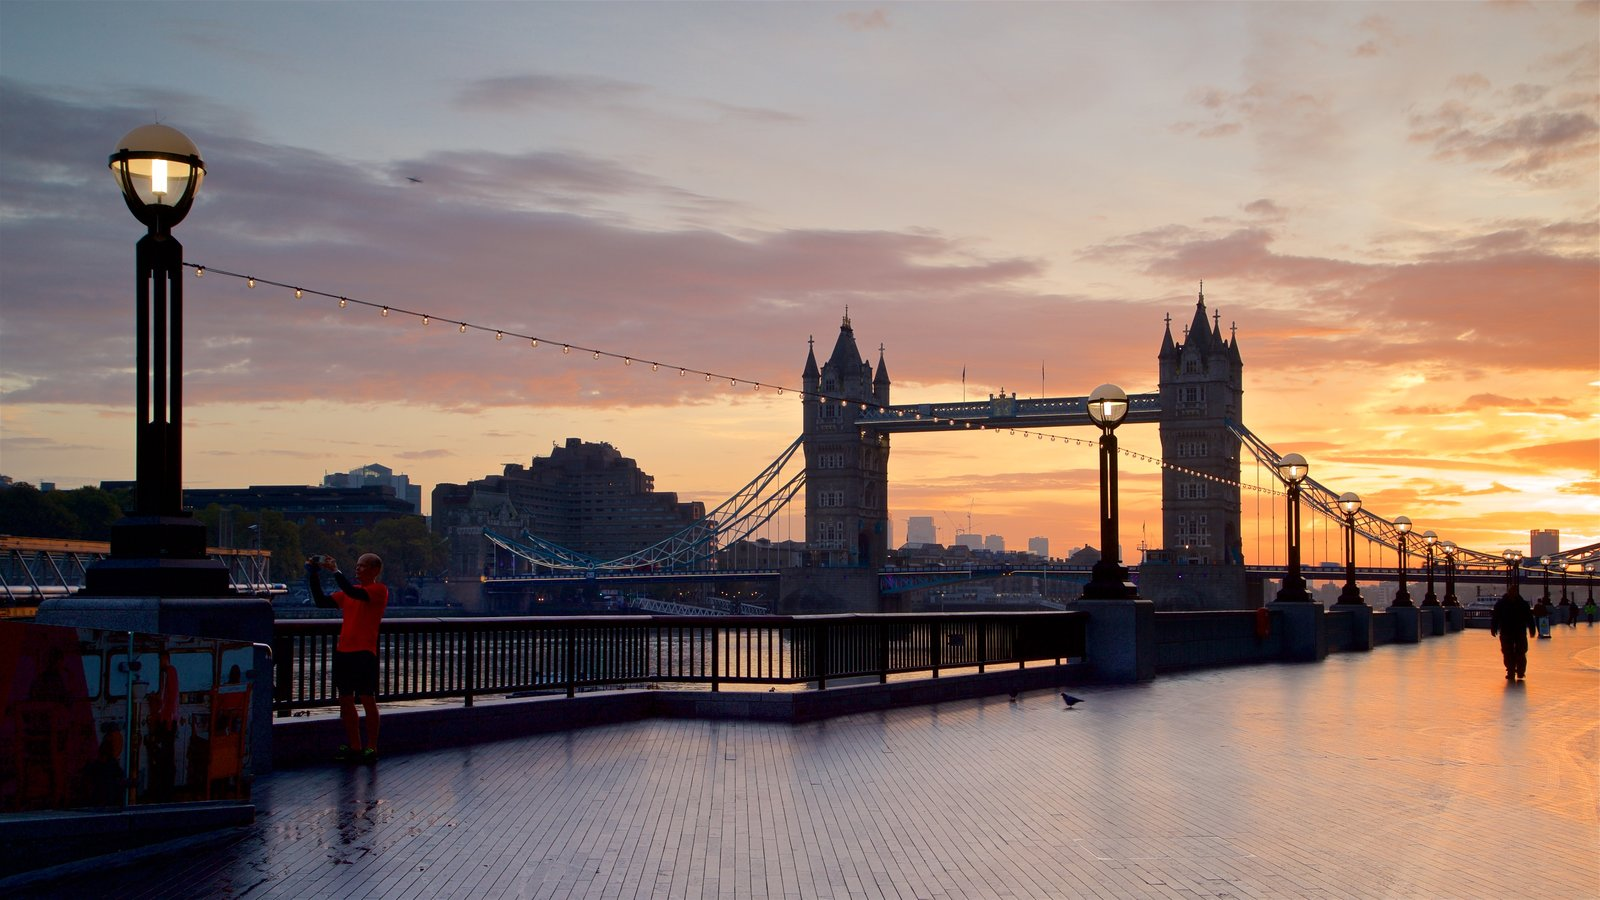 Tower Bridge which includes a bridge, a sunset and landscape views